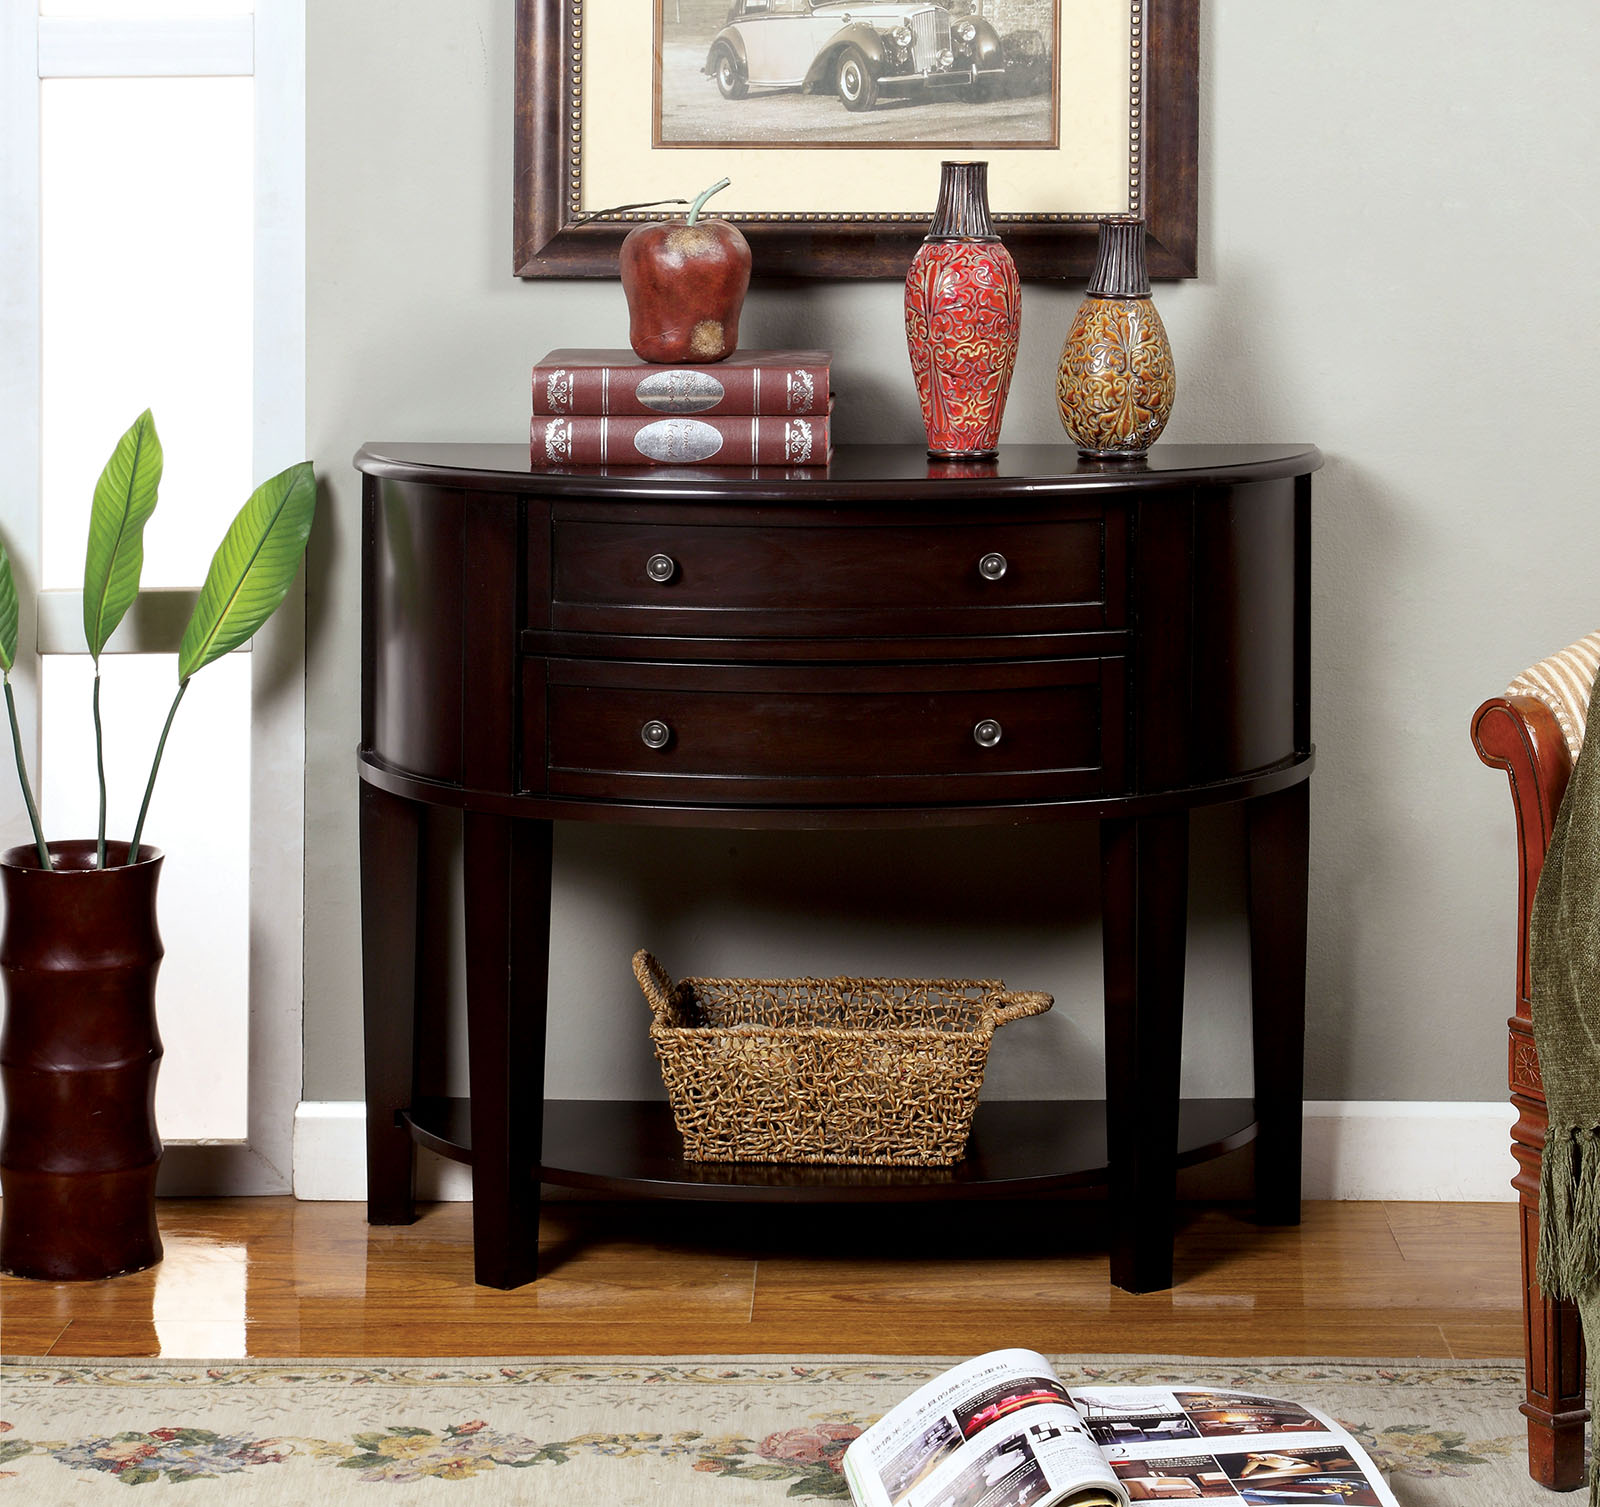 Furniture of america ac211 transitional espresso side table chanti collection ac211 espresso console table geotapseo Images